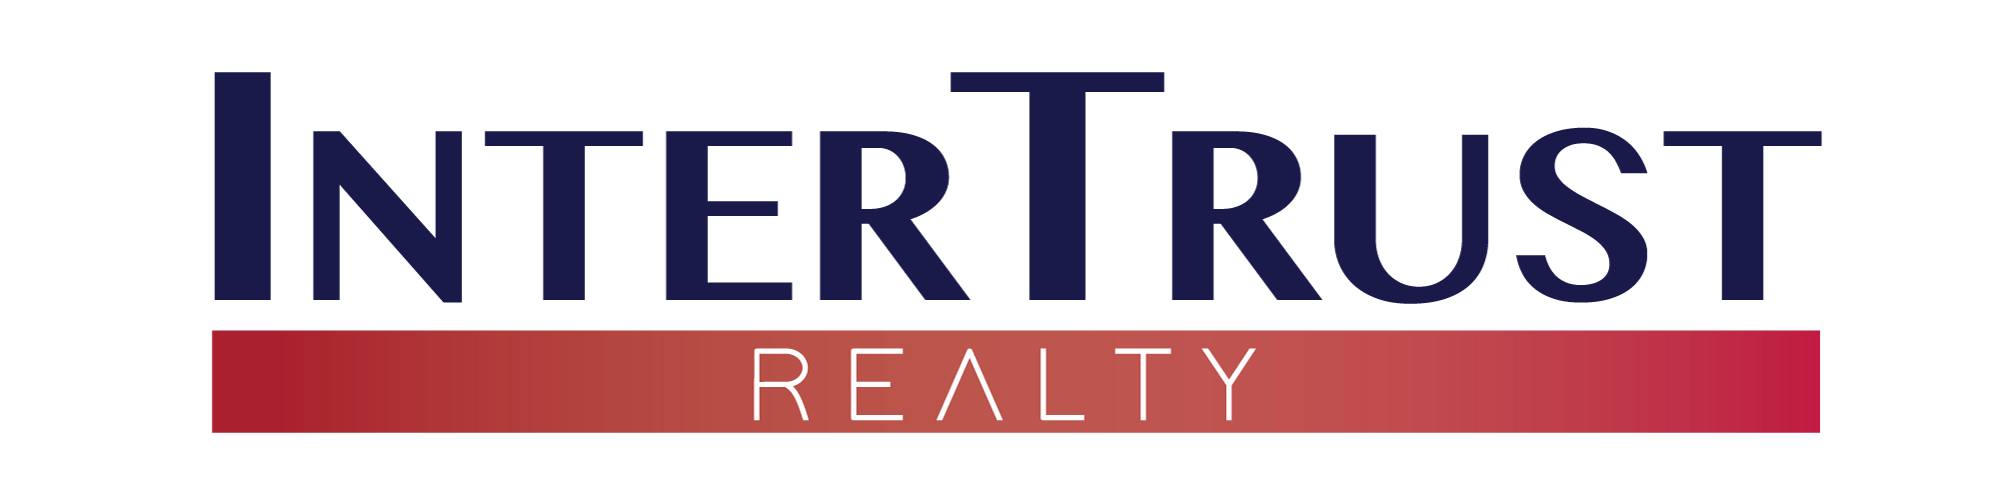 Intertrust Realty